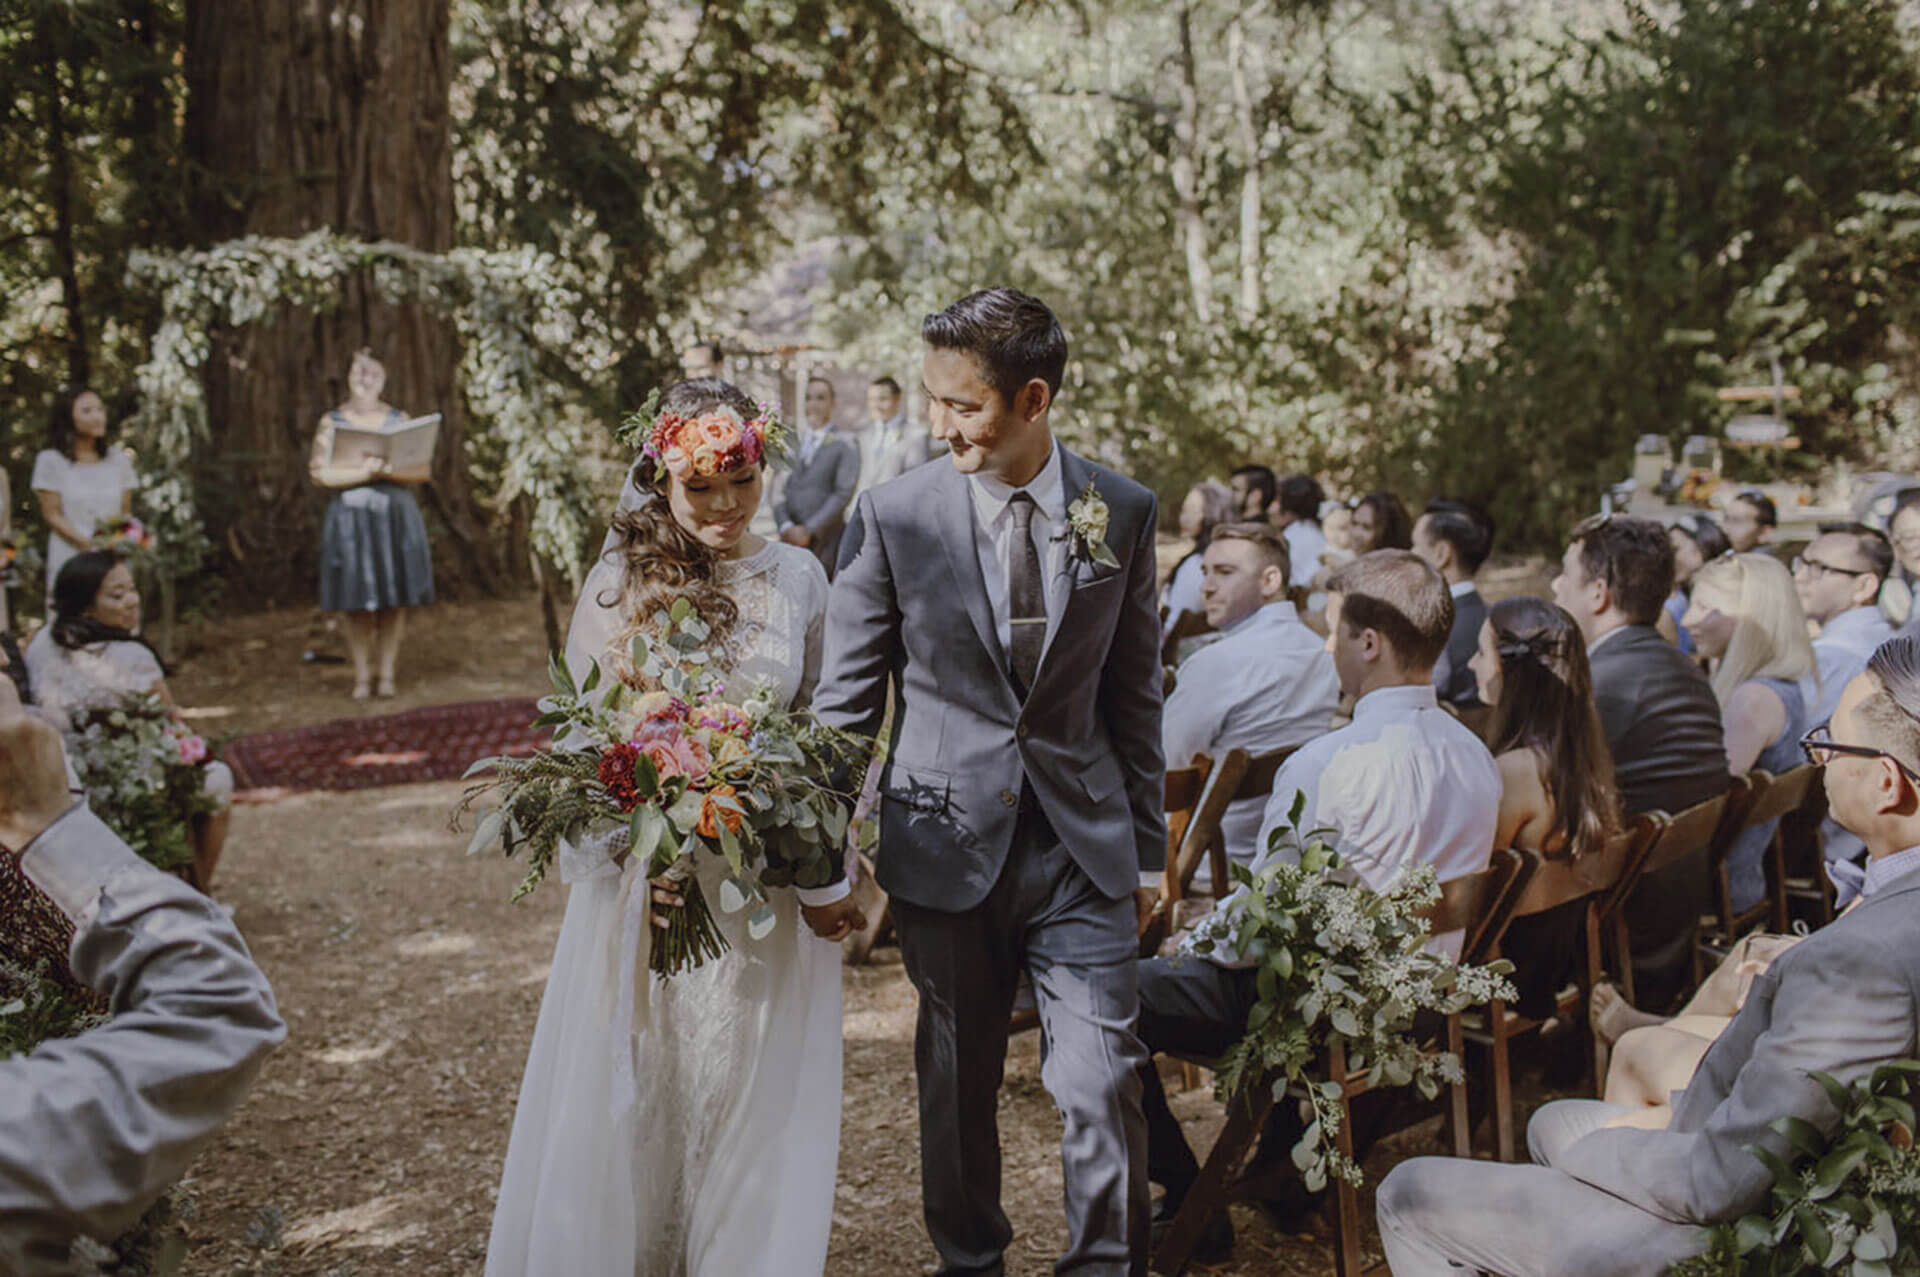 Bohemian weddings images galleries for Where to take wedding photos